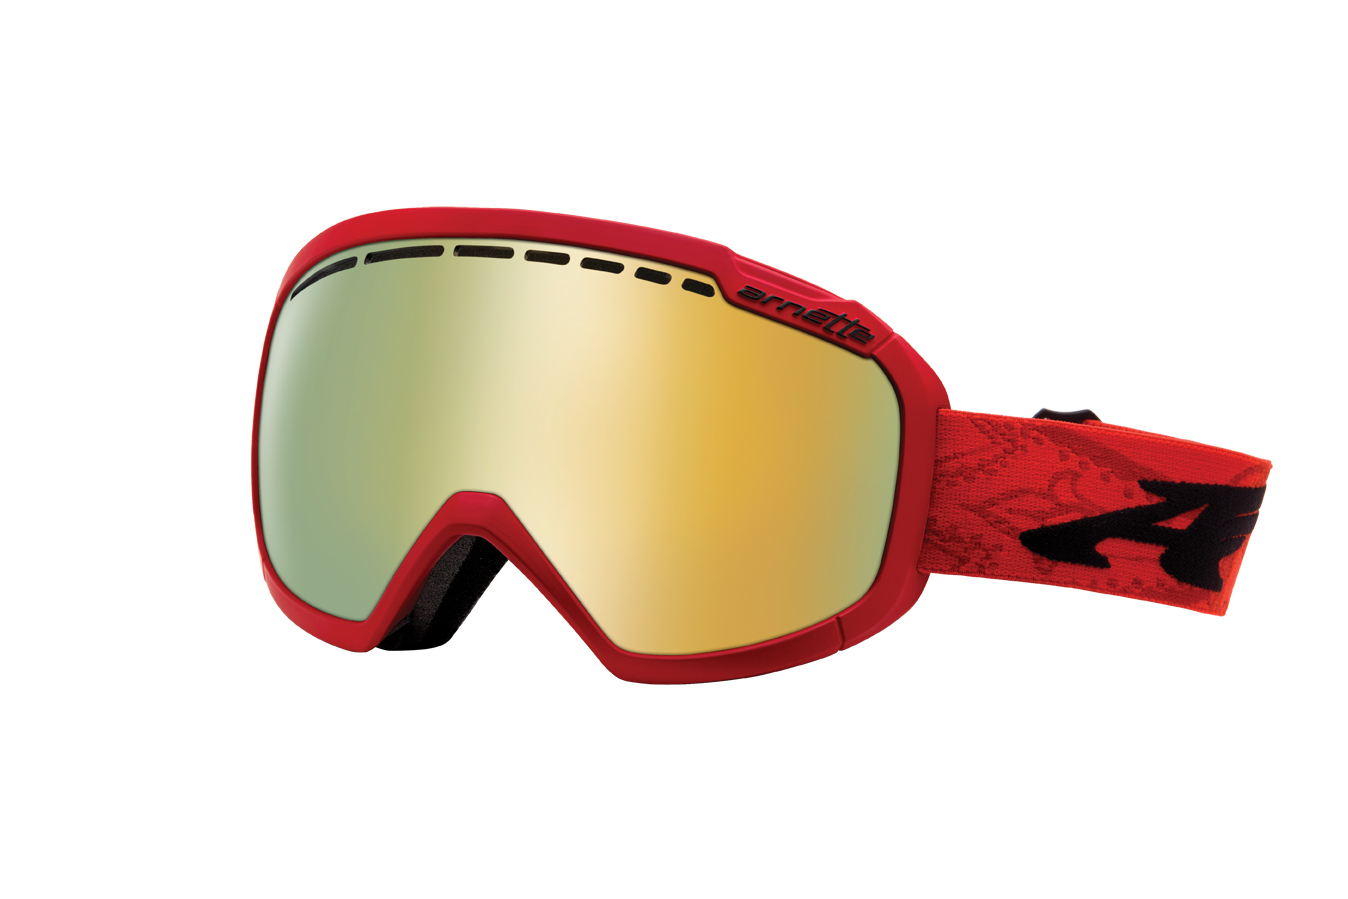 84c40a669367 Skylight: Arnette's newest and most cutting edge goggle, in a limited  edition red colourway with a gold chrome lens. It features Arnette's No-BS  (Blind ...